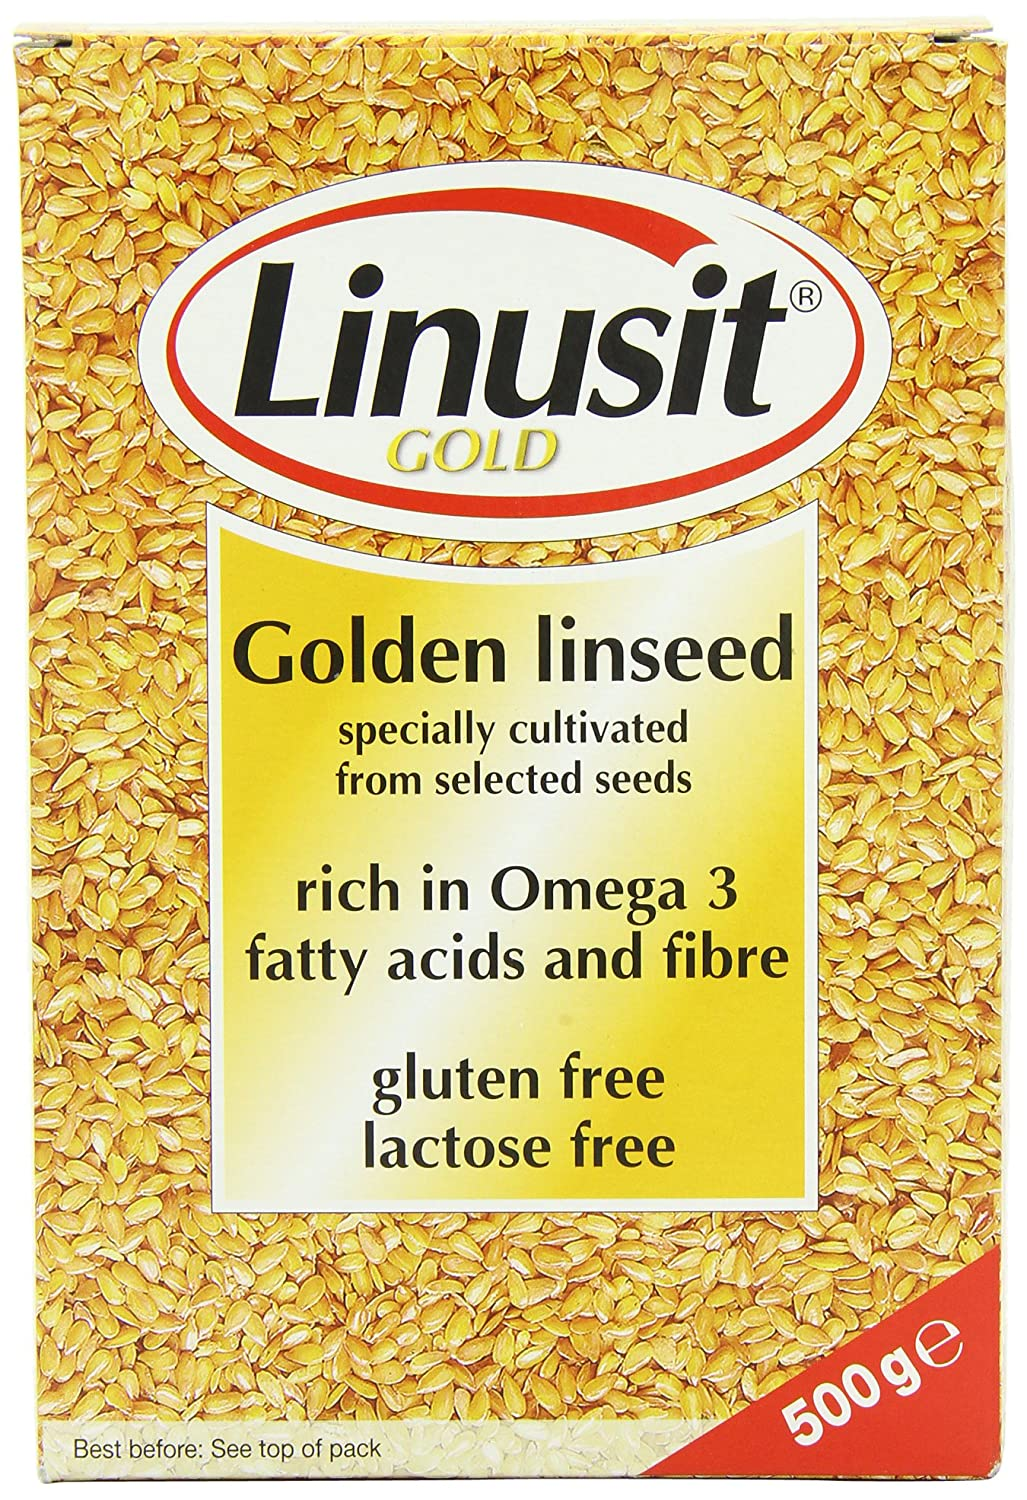 Linusit Gold Golden - Lino de linaza (500 g): Amazon.es ...